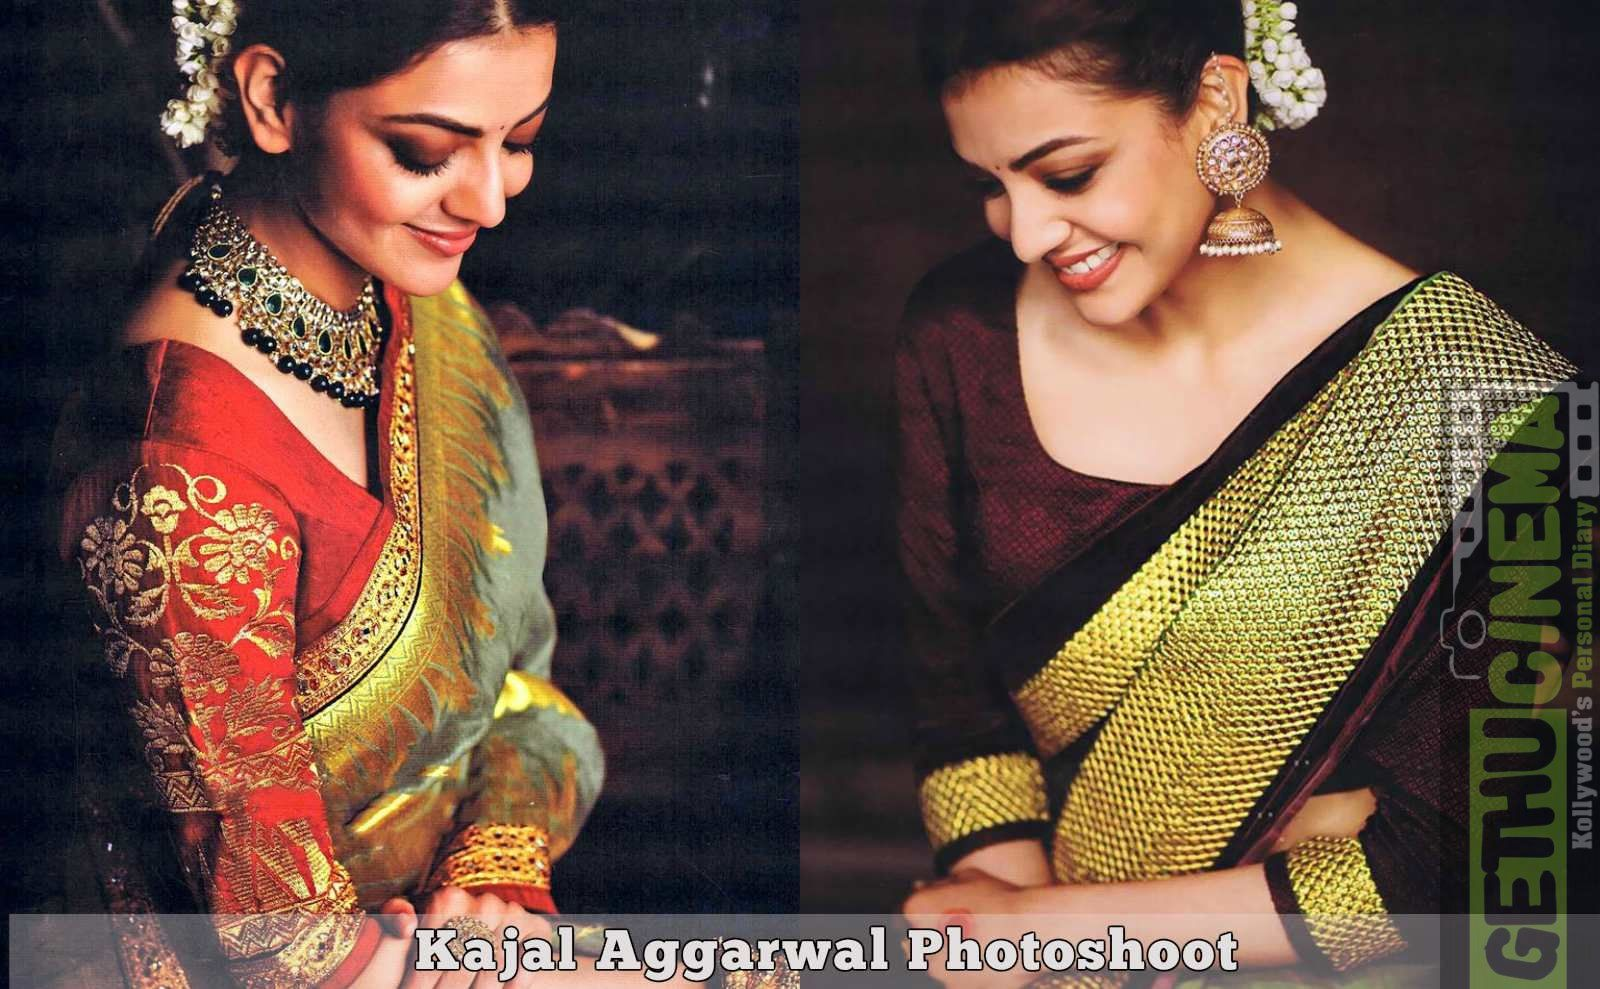 Kajal Aggarwal Traditional Photoshoot Gallery With Images Indian Actress Gallery Photoshoot All Indian Actress